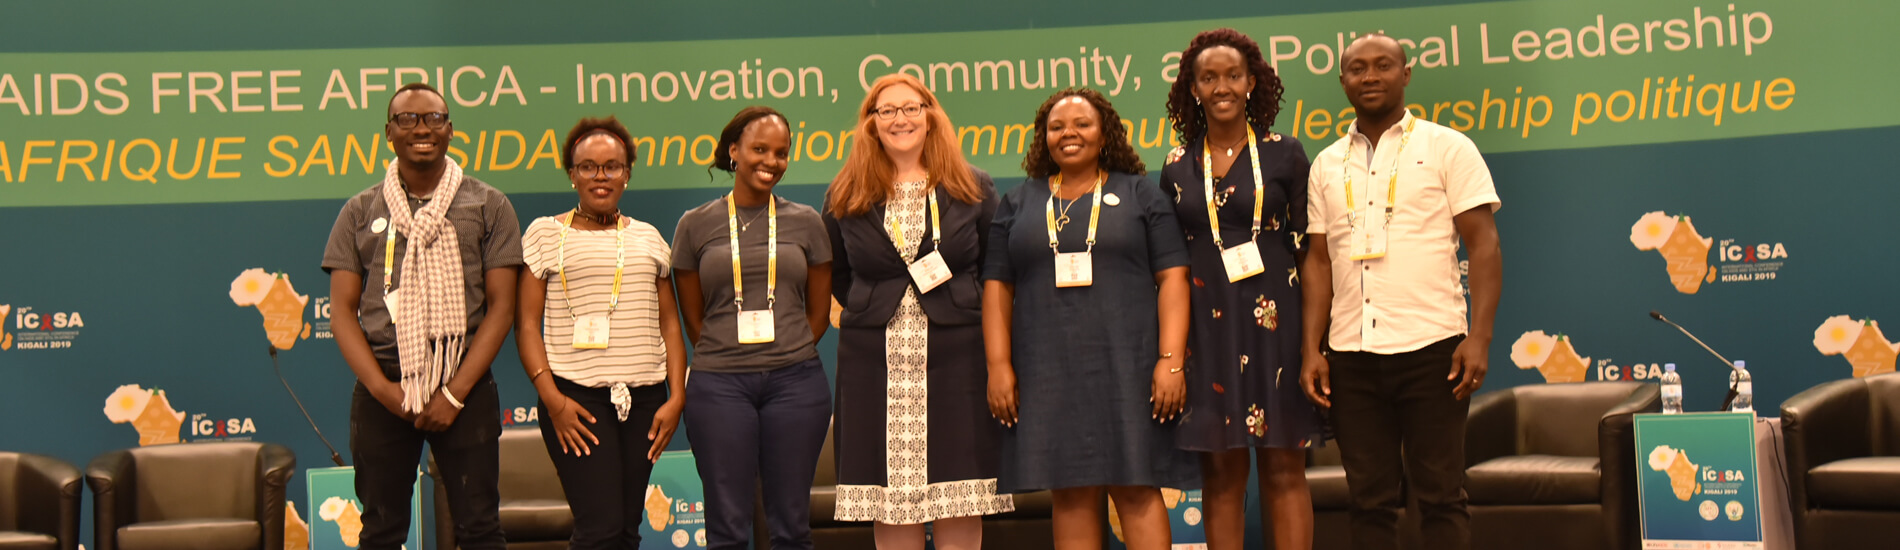 IDI-Makerere , DOlPHin 2 participation in the 20th International Conference on AIDS & STIs in Africa, Kigali, Rwanda